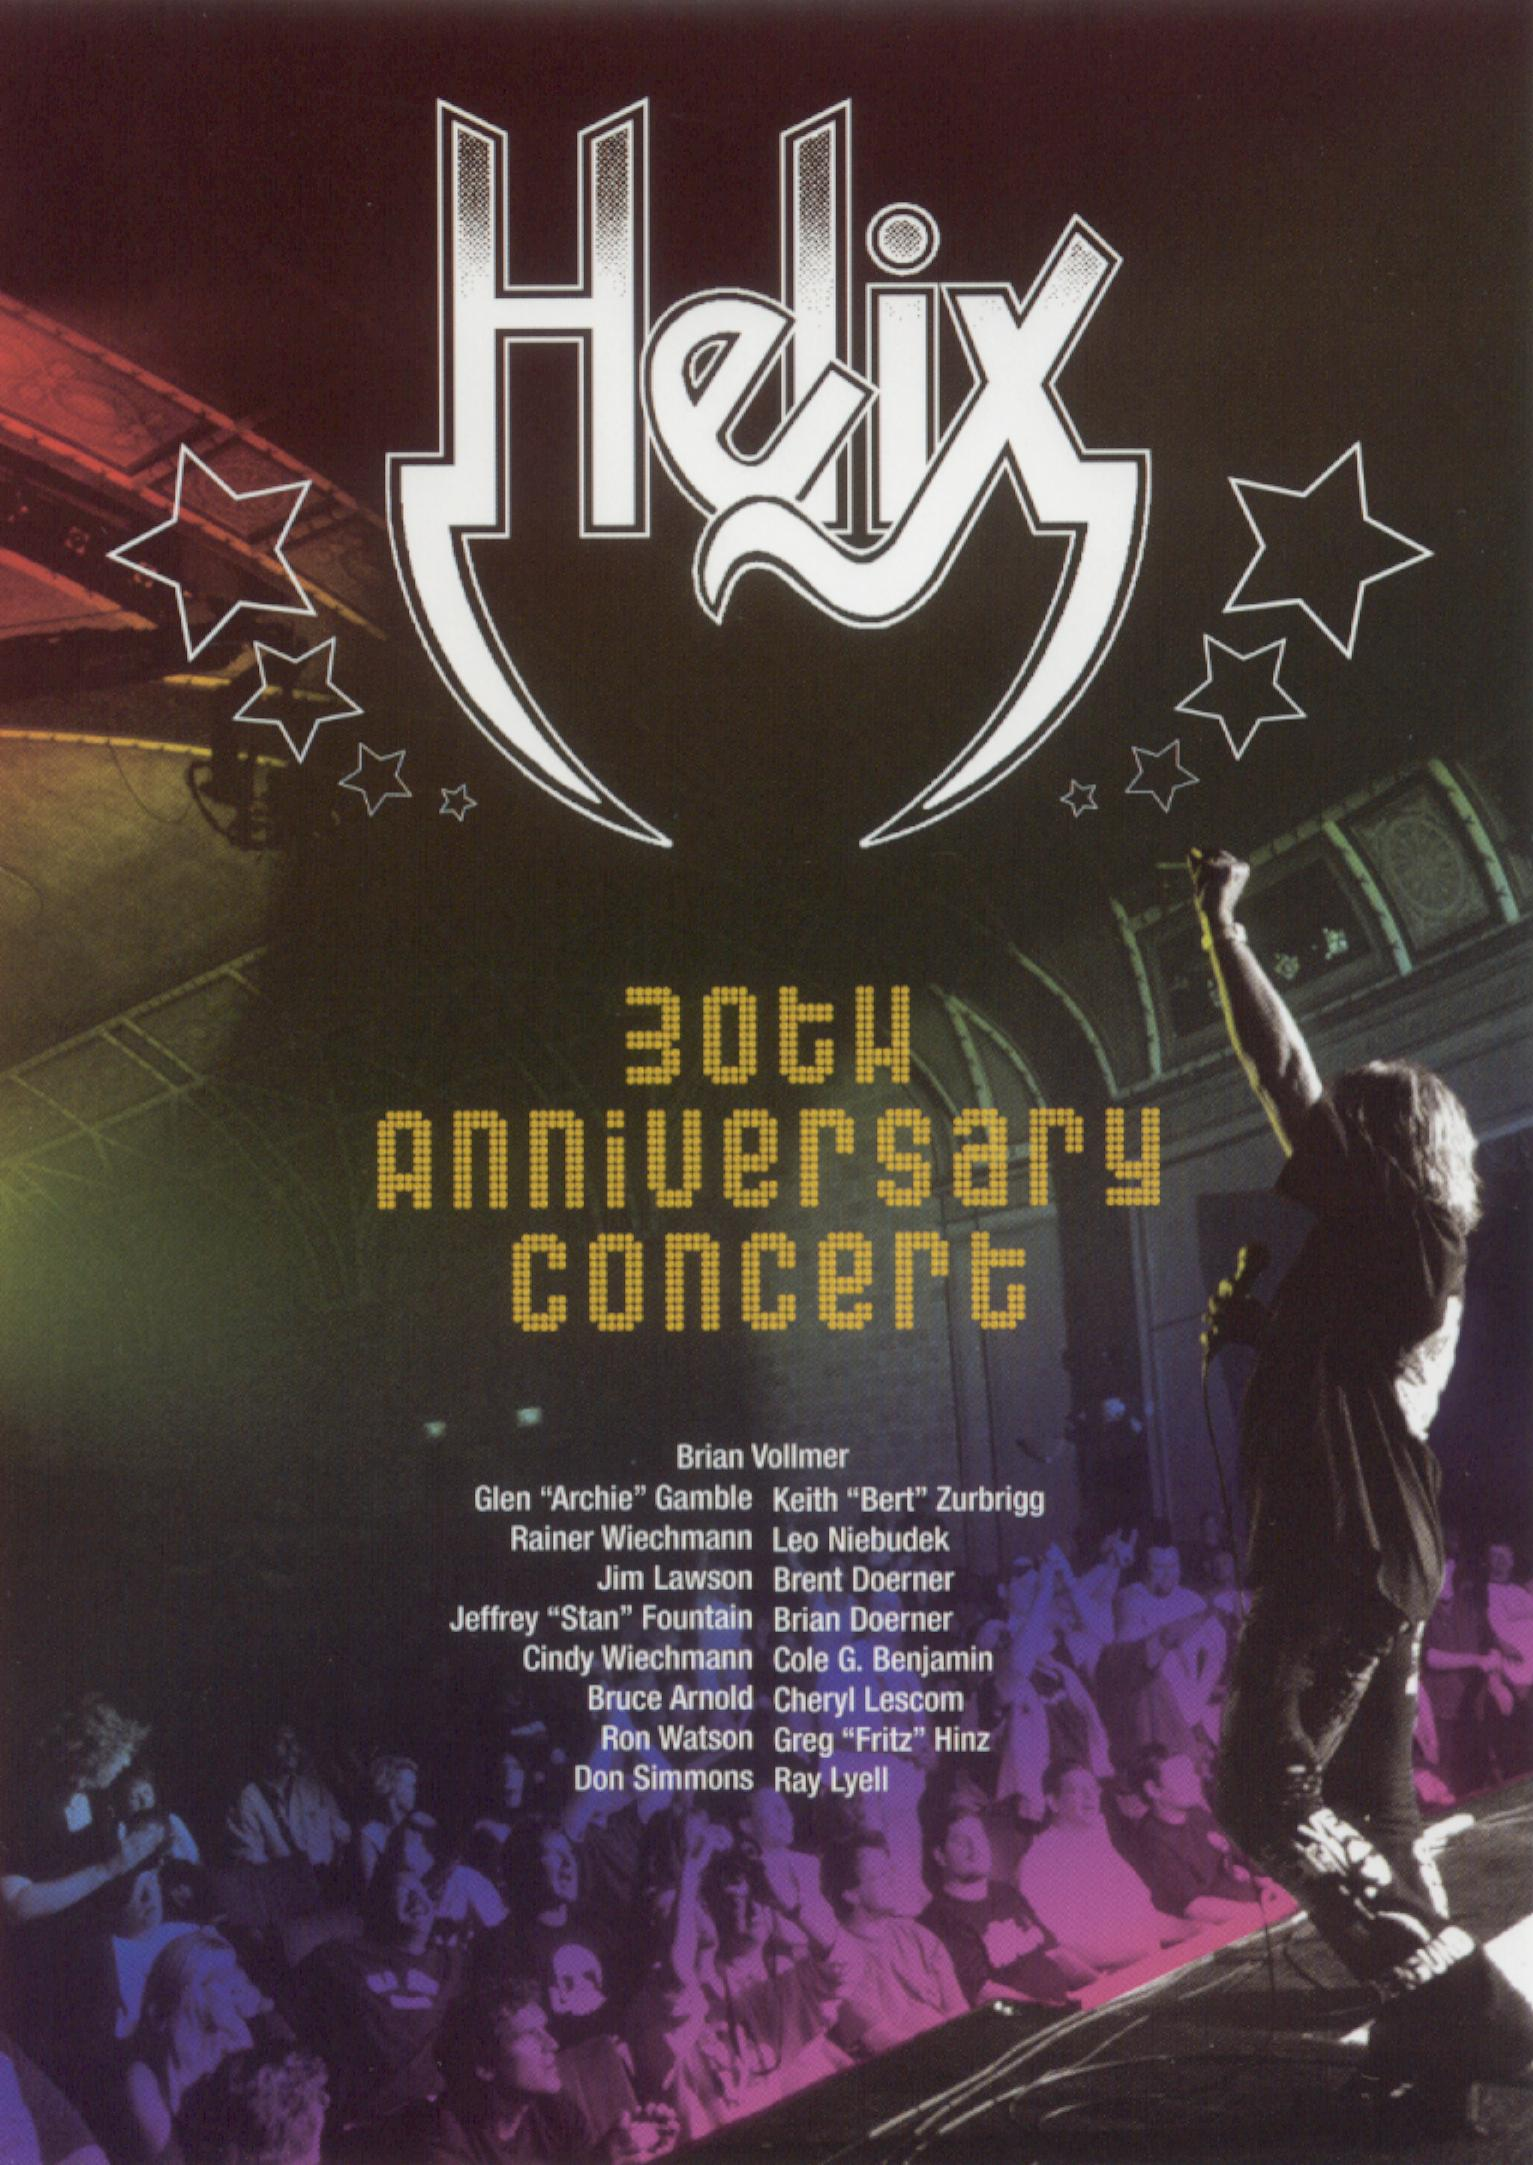 Helix: Rockin' You for 30 Years